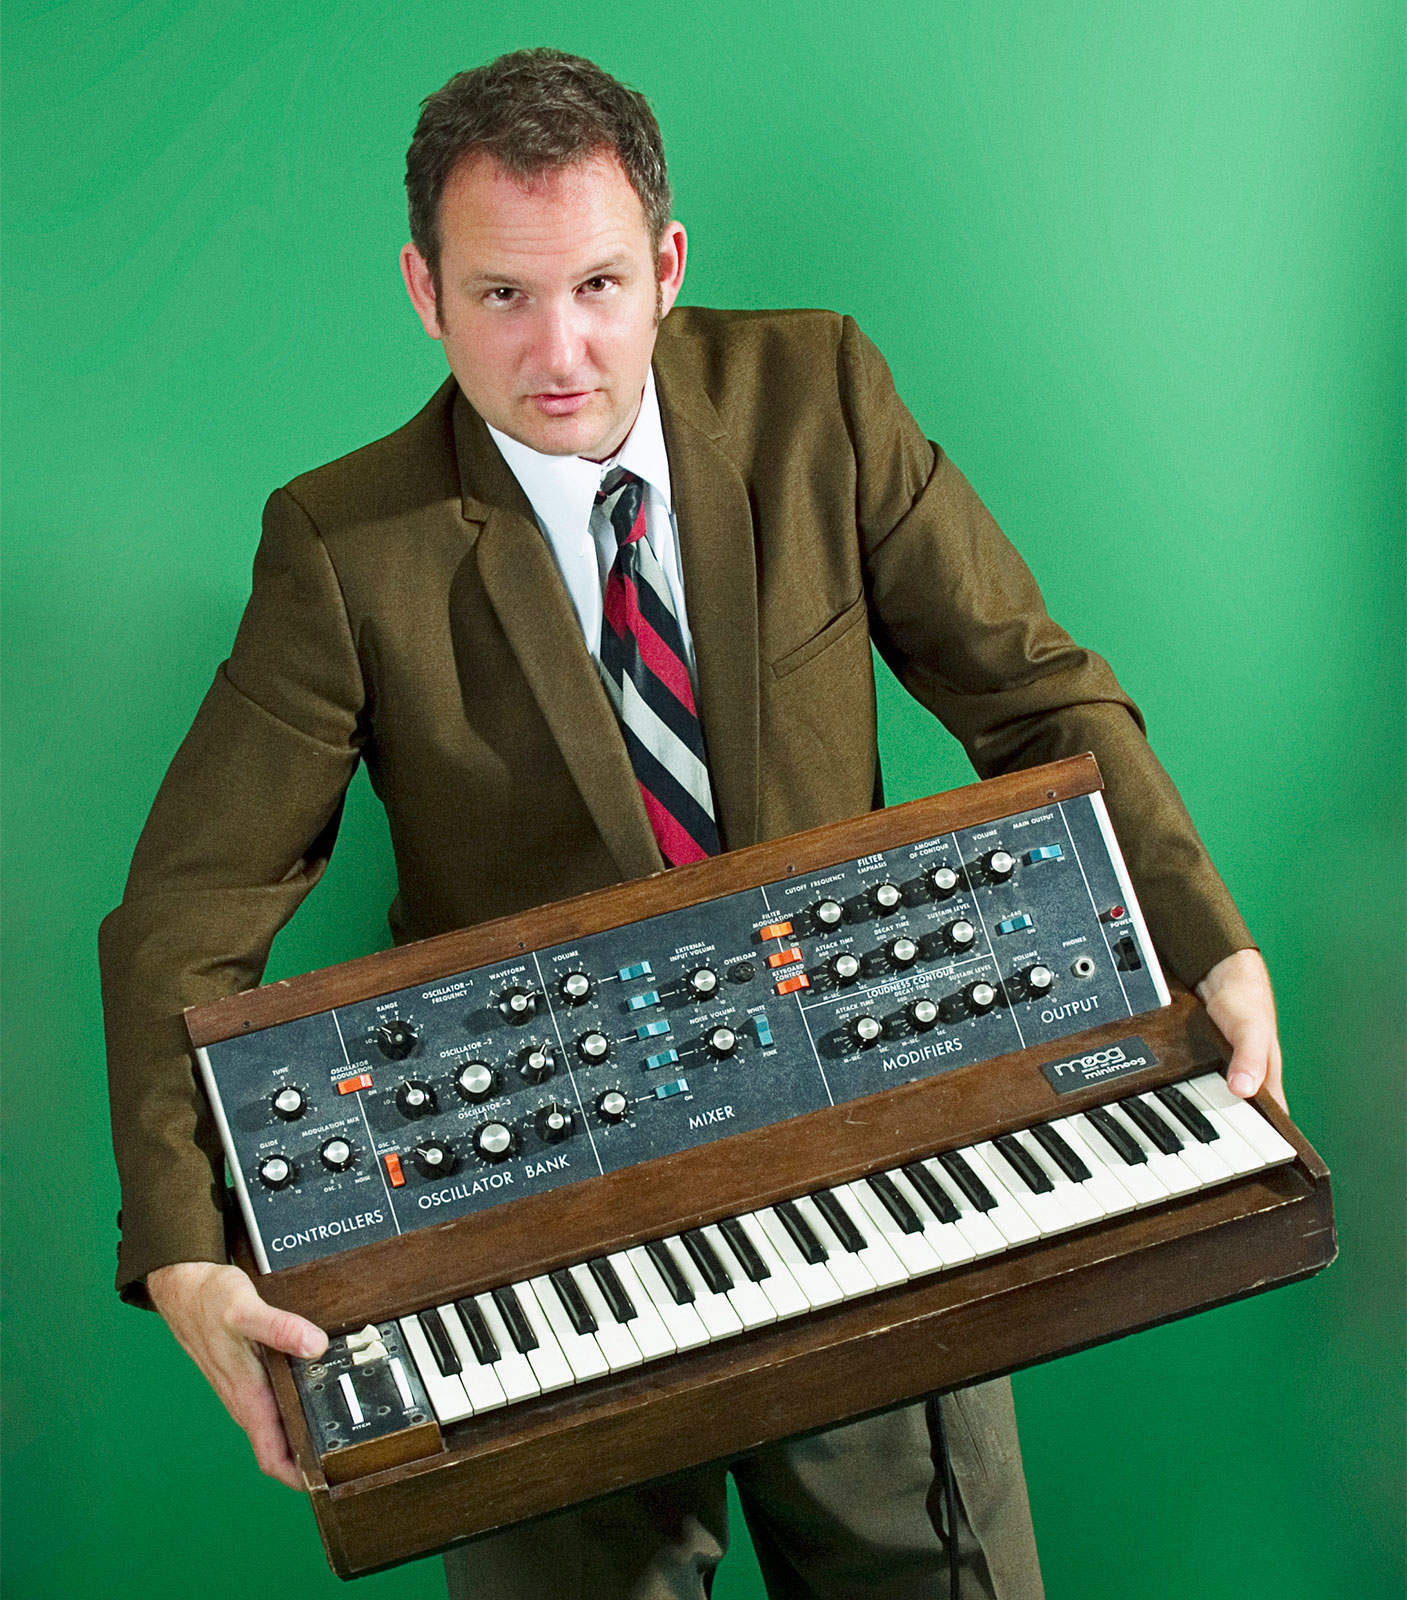 When the Moog strikes, Parry Gripp writes funny songs about anything.